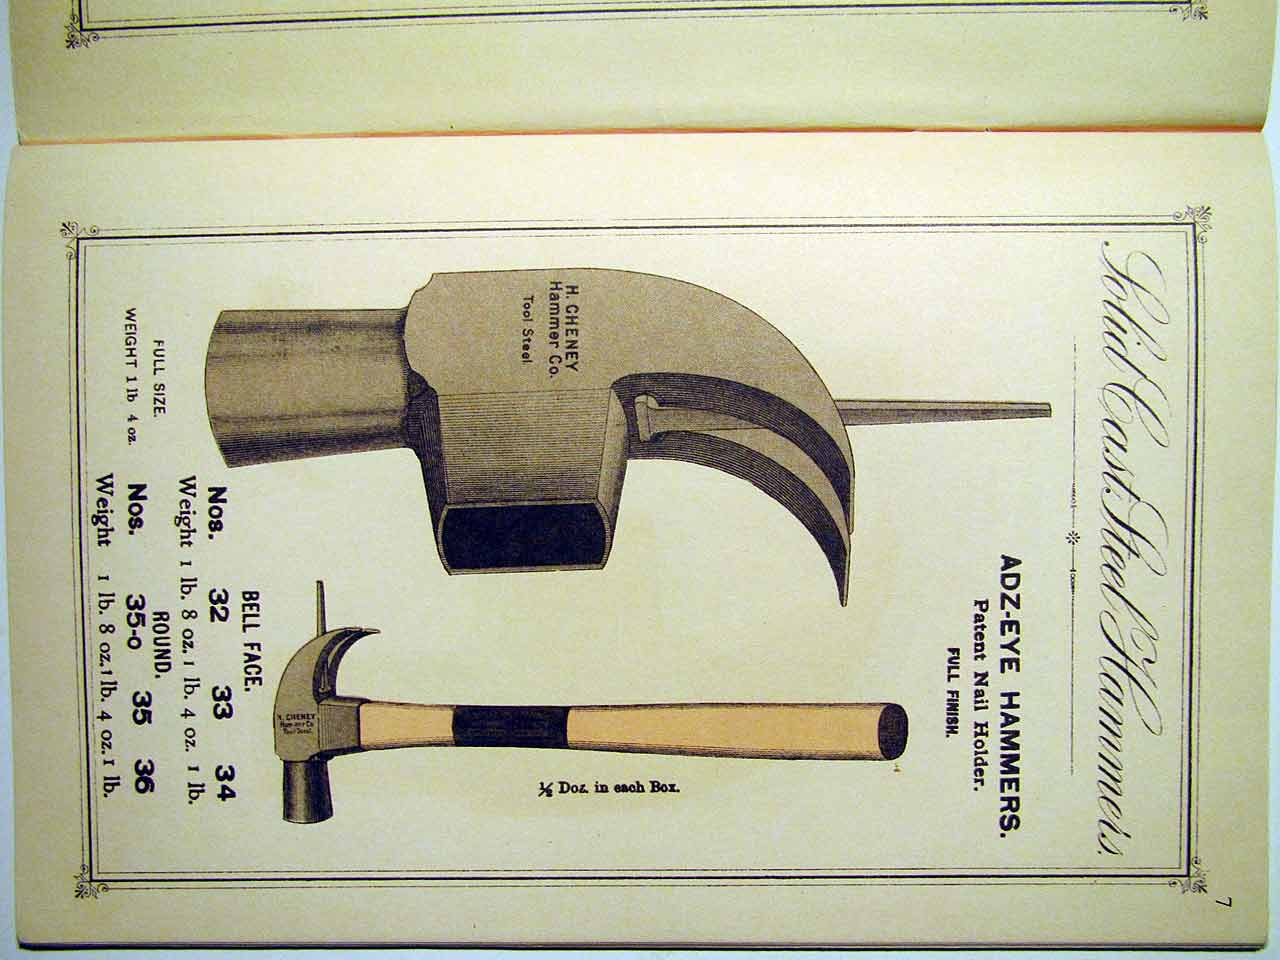 Hammers Patent Nail Holder